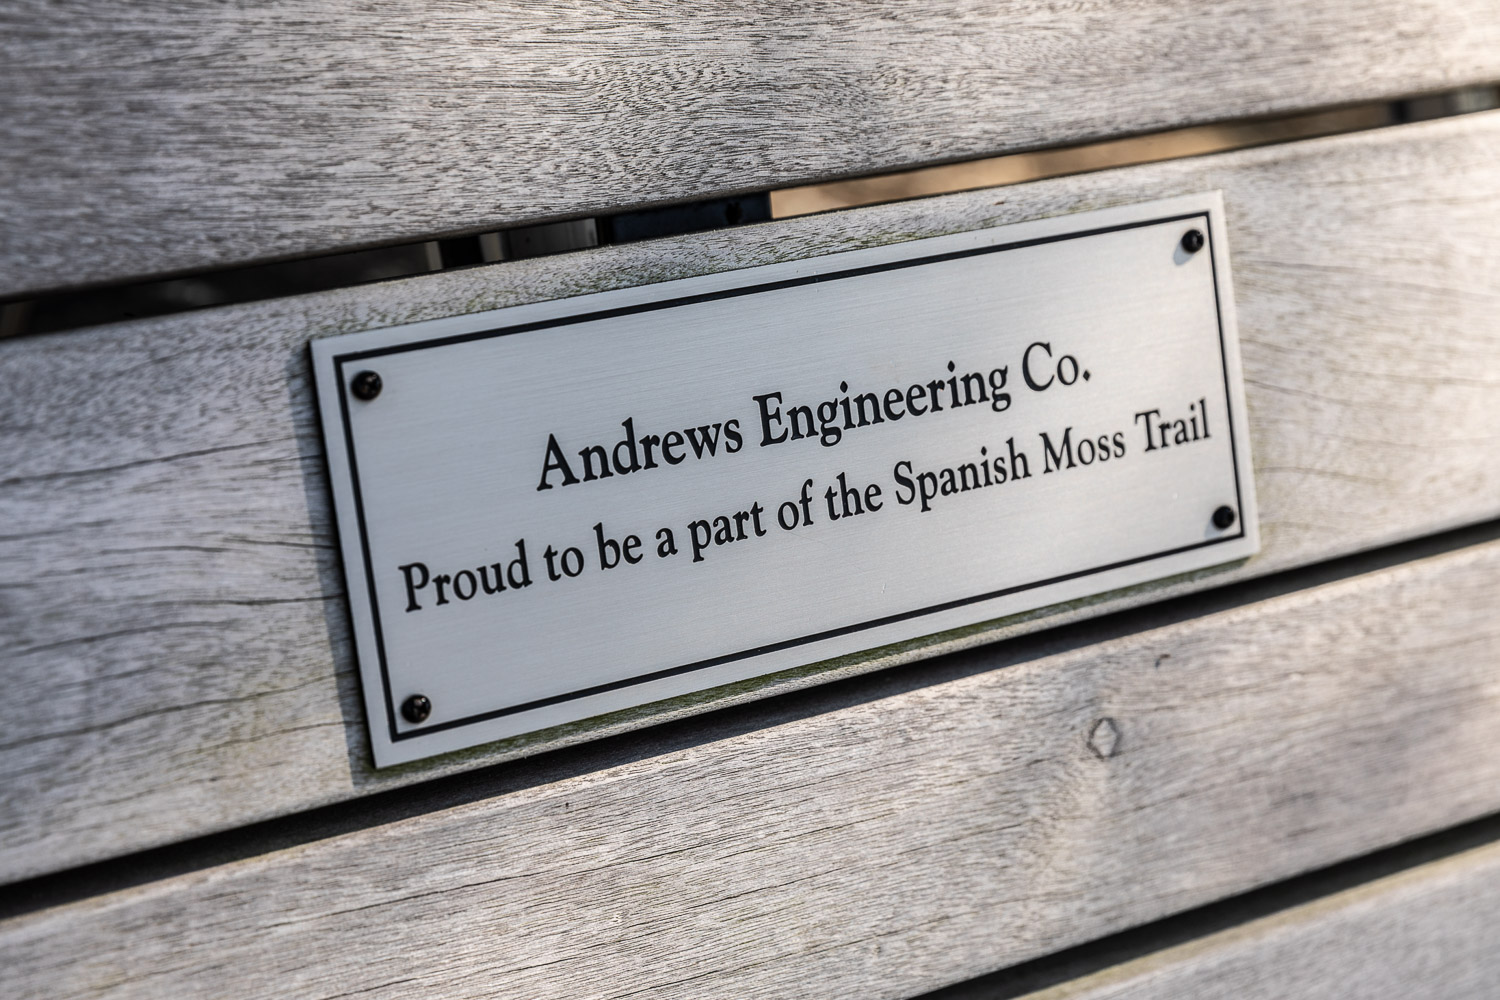 Andrews Engineering Bench on Spanish Moss Trail